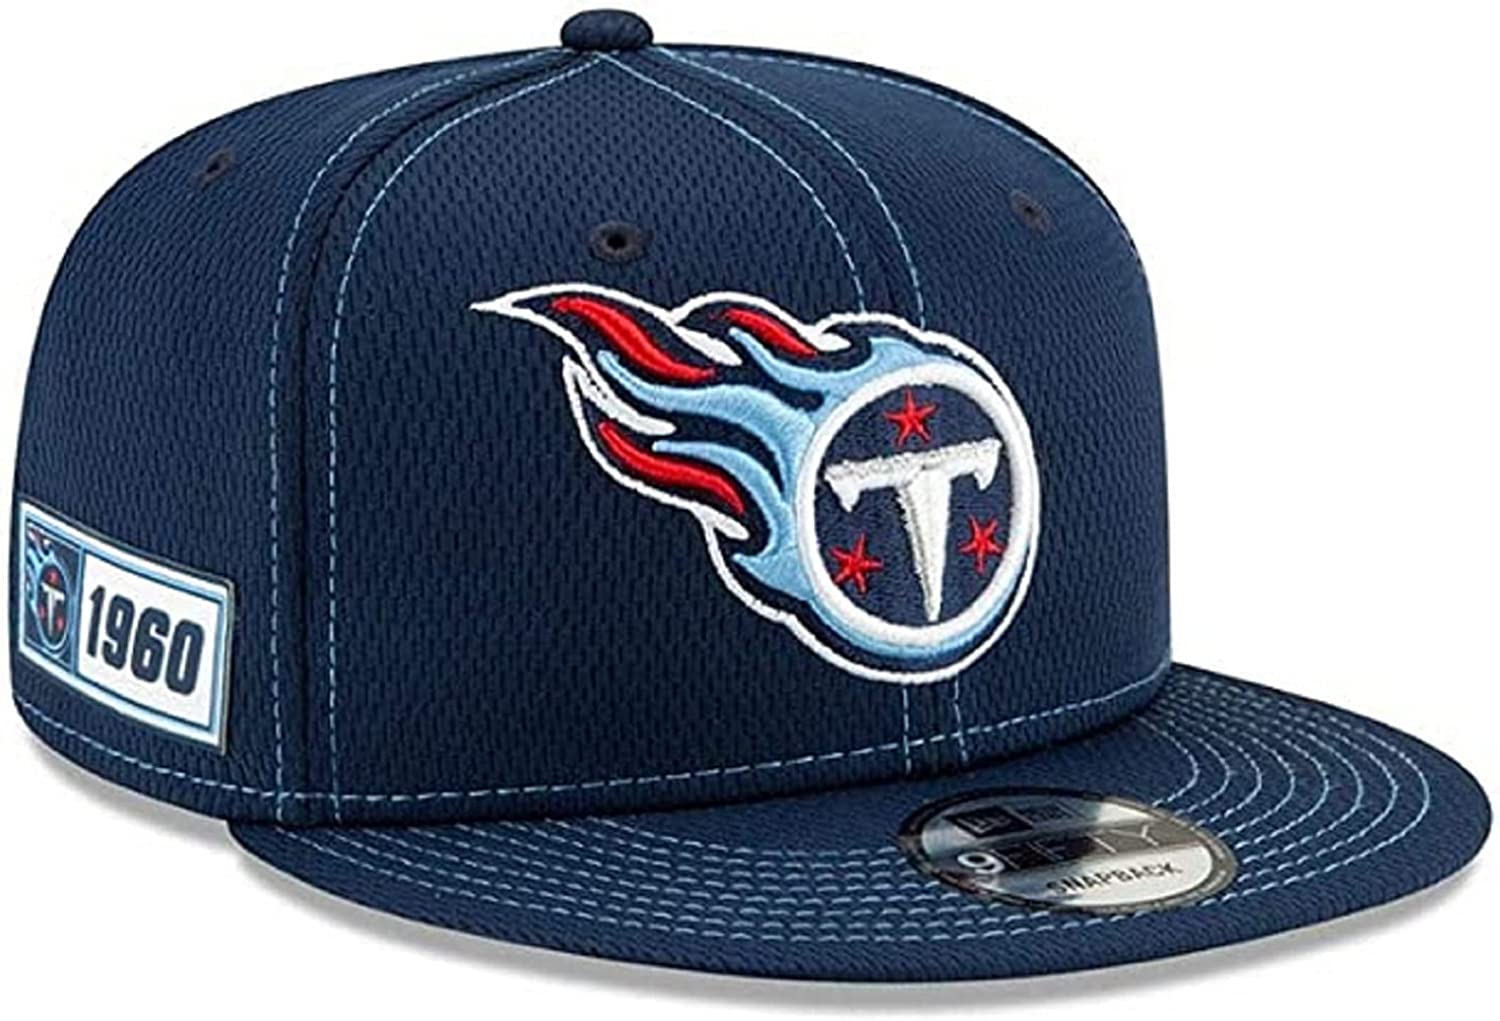 New Era Authentic Exclusive Titans Don't miss the campaign Adju 9Fifty Snapback Tenessee Same day shipping